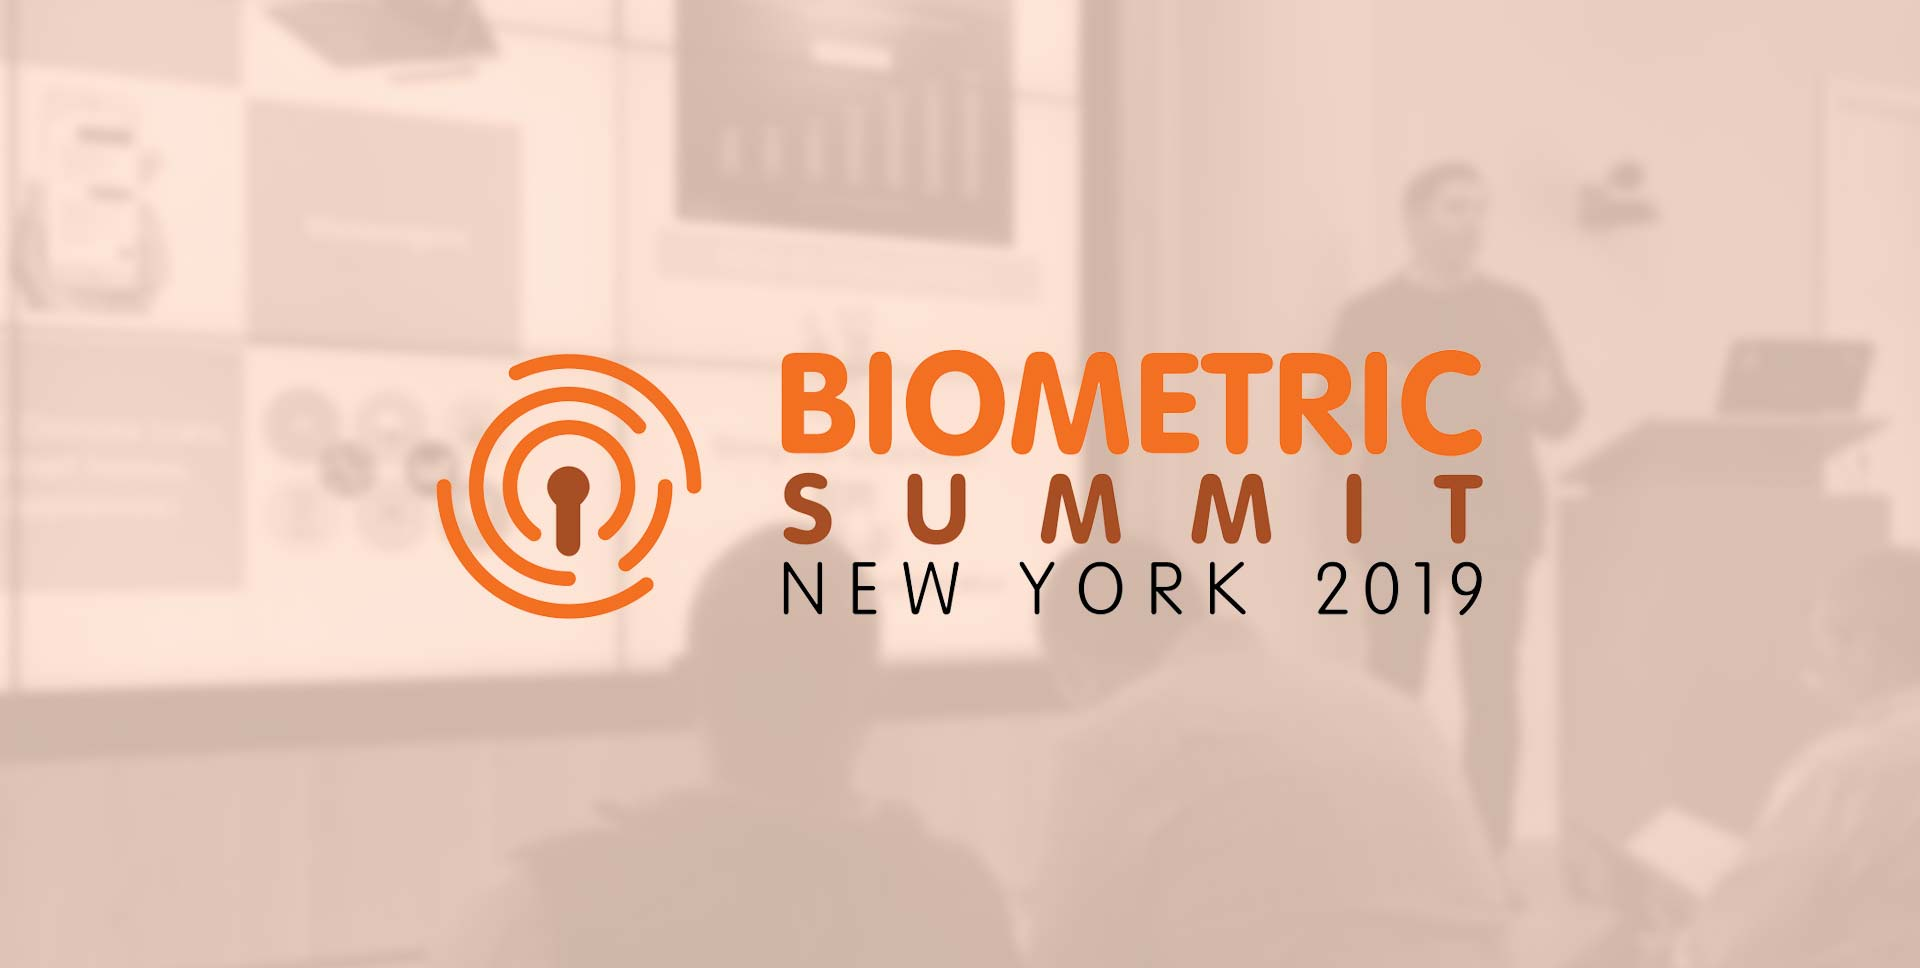 Biometric Summit New York 2019